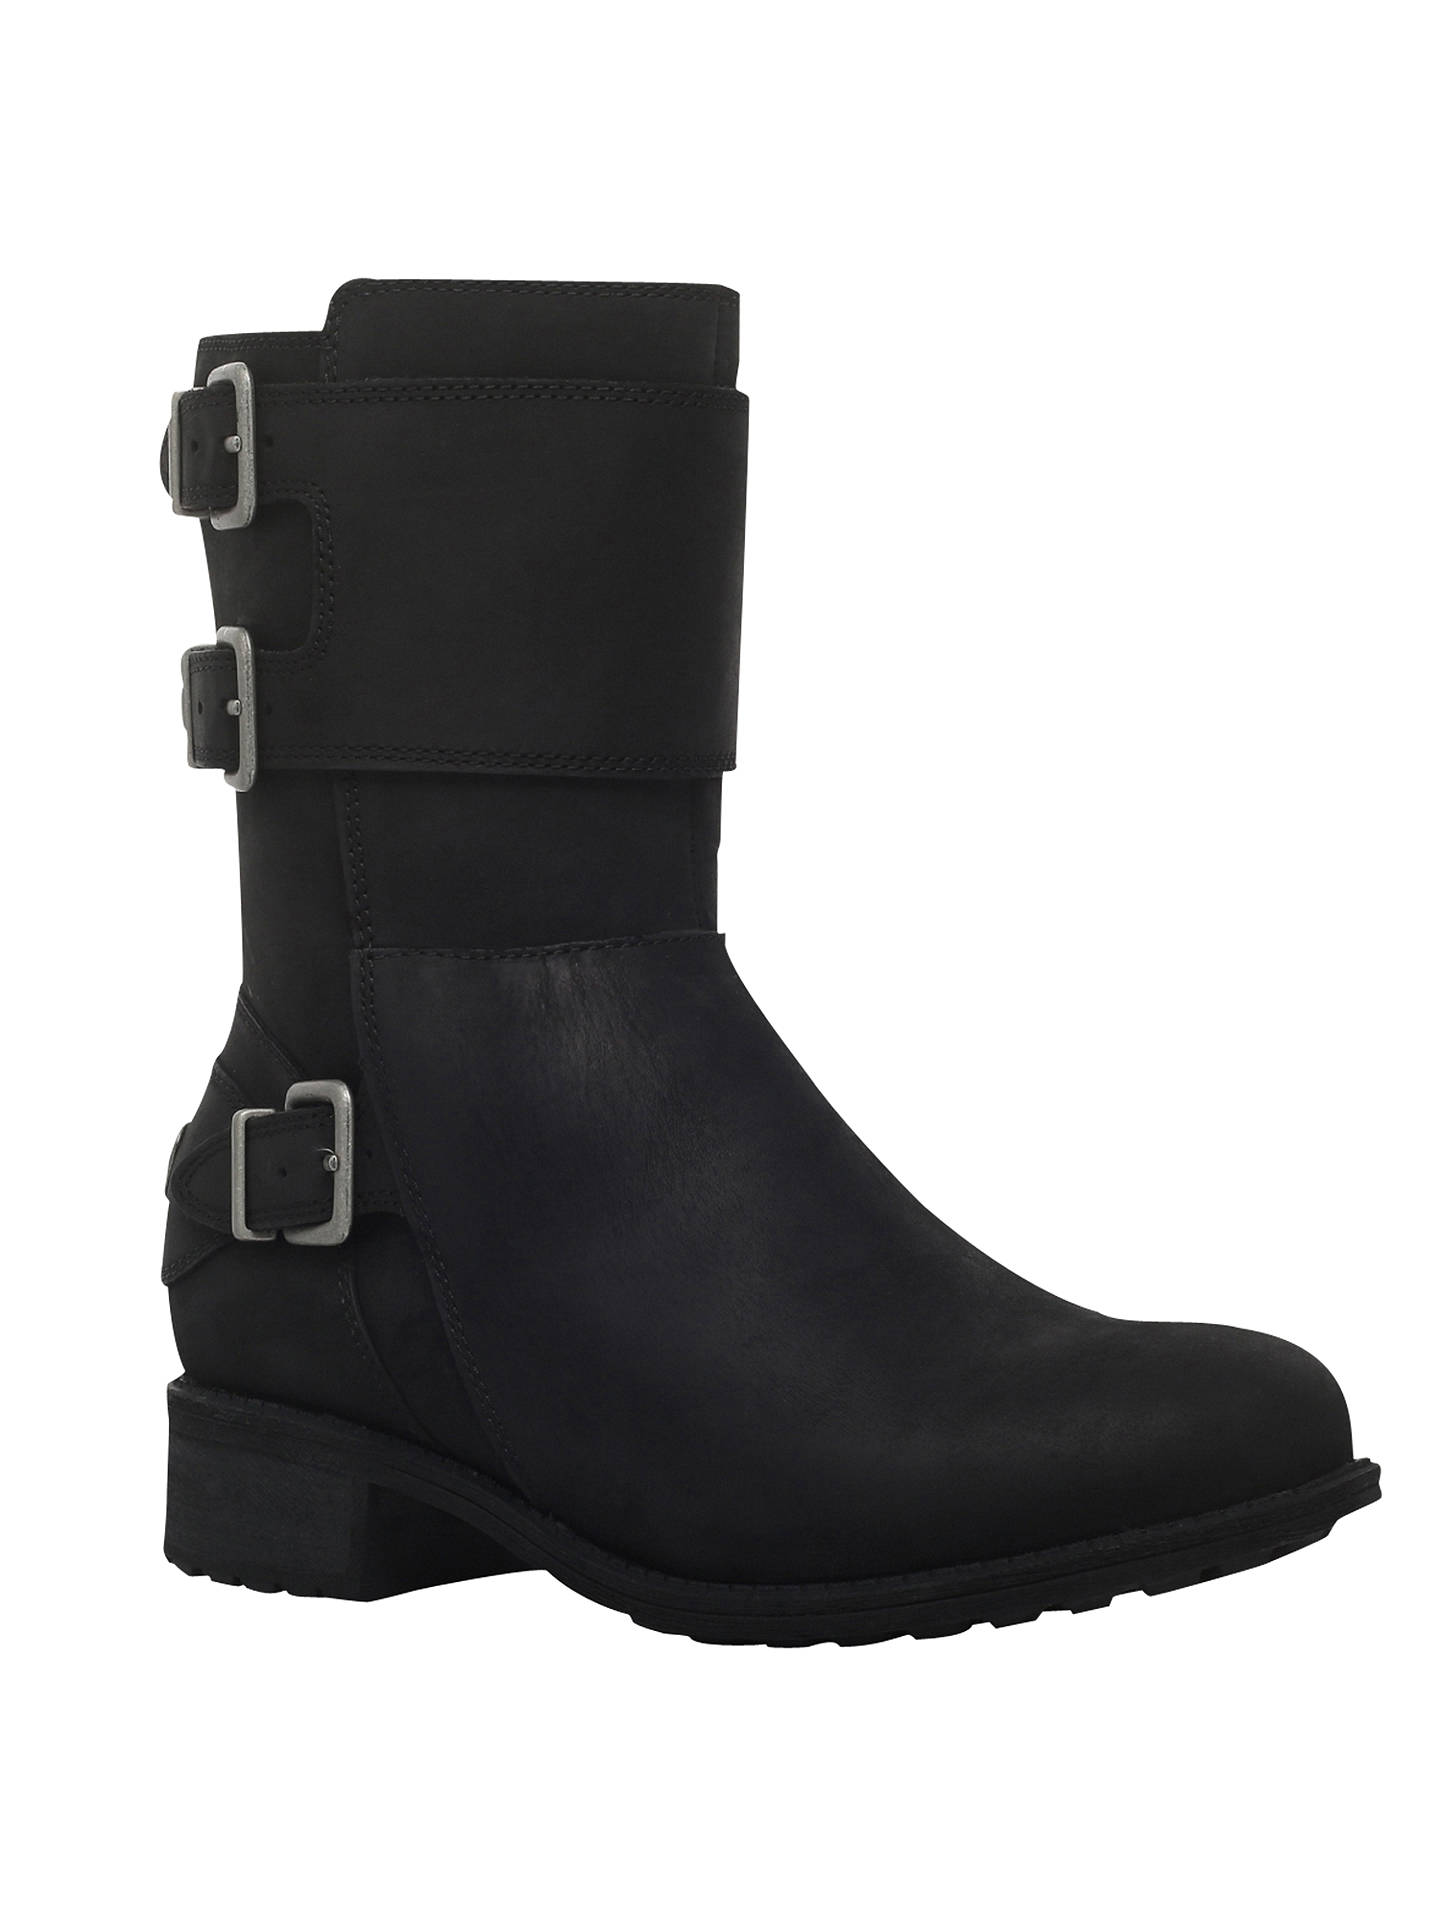 eec6e8e69df UGG Wilcox Buckle Ankle Boots, Black at John Lewis & Partners